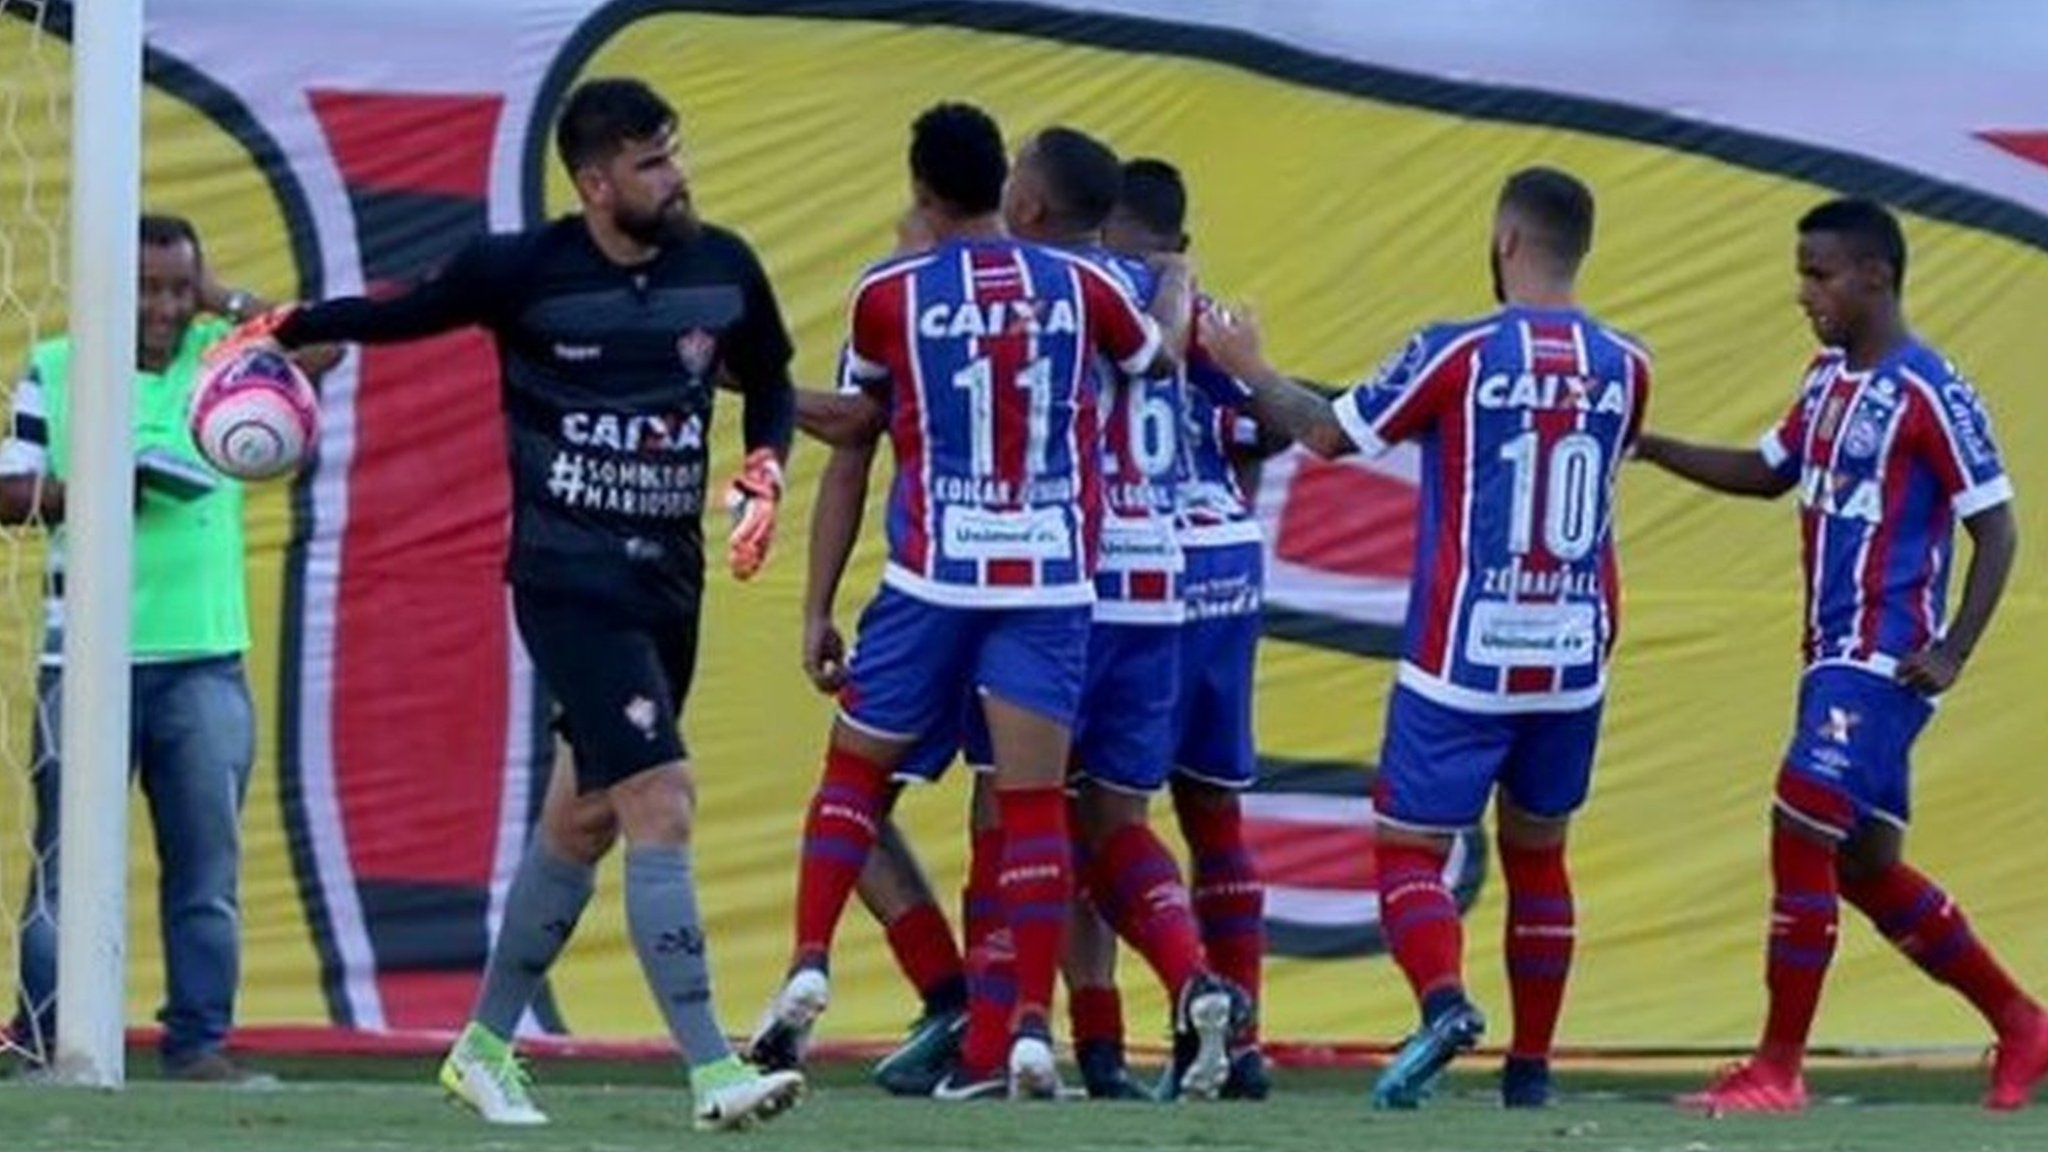 Abandoned after 10 red cards - watch moment that sparked chaos in Brazilian game